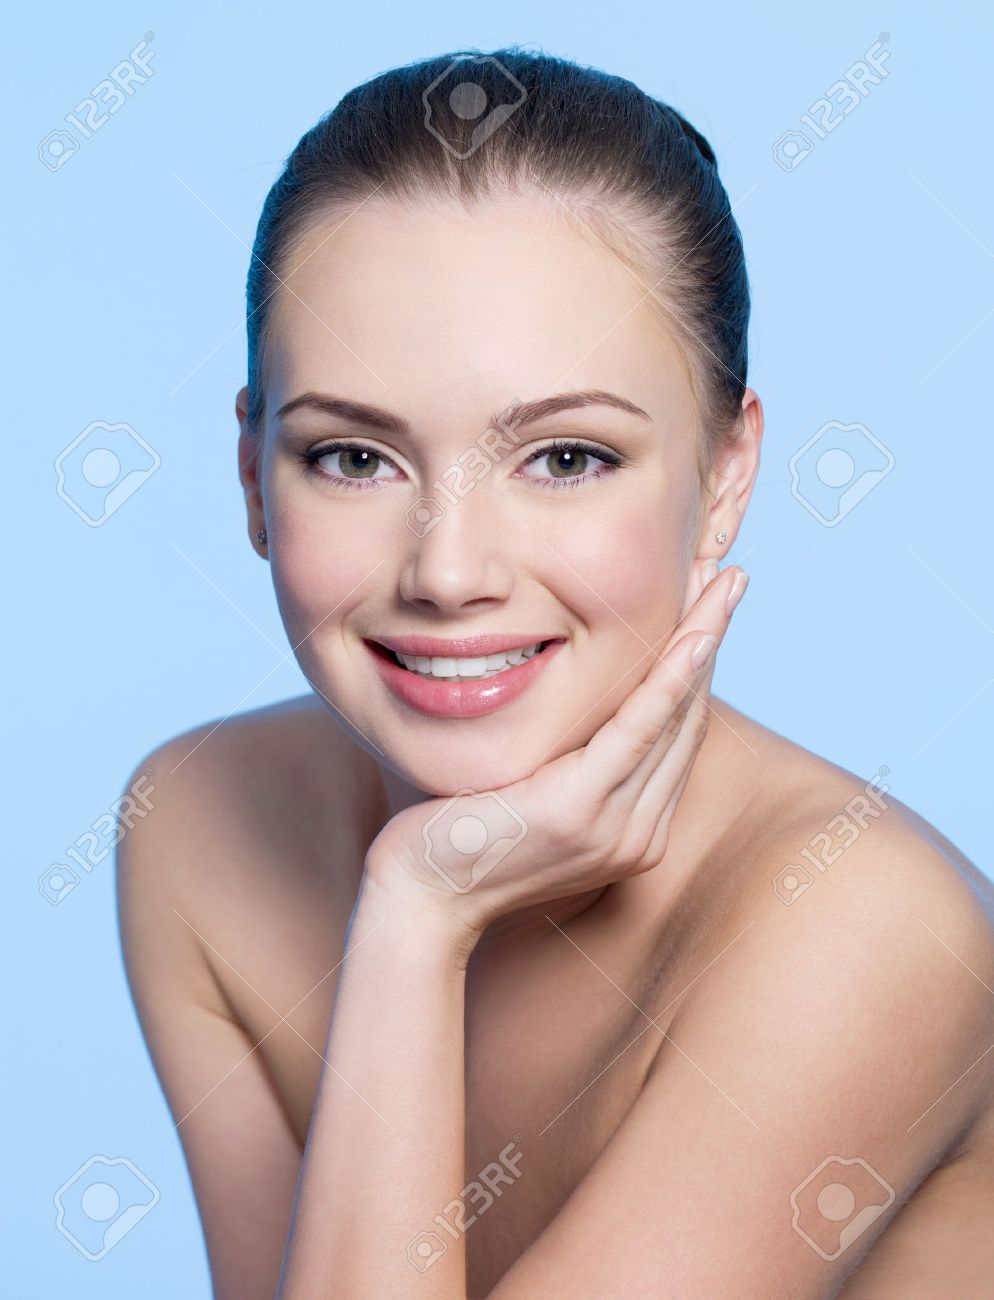 Happy beautiful teen girl face with clean healthy skin - blue background - 8928580-Happy-beautiful-teen-girl-face-with-clean-healthy-skin-blue-background-Stock-Photo